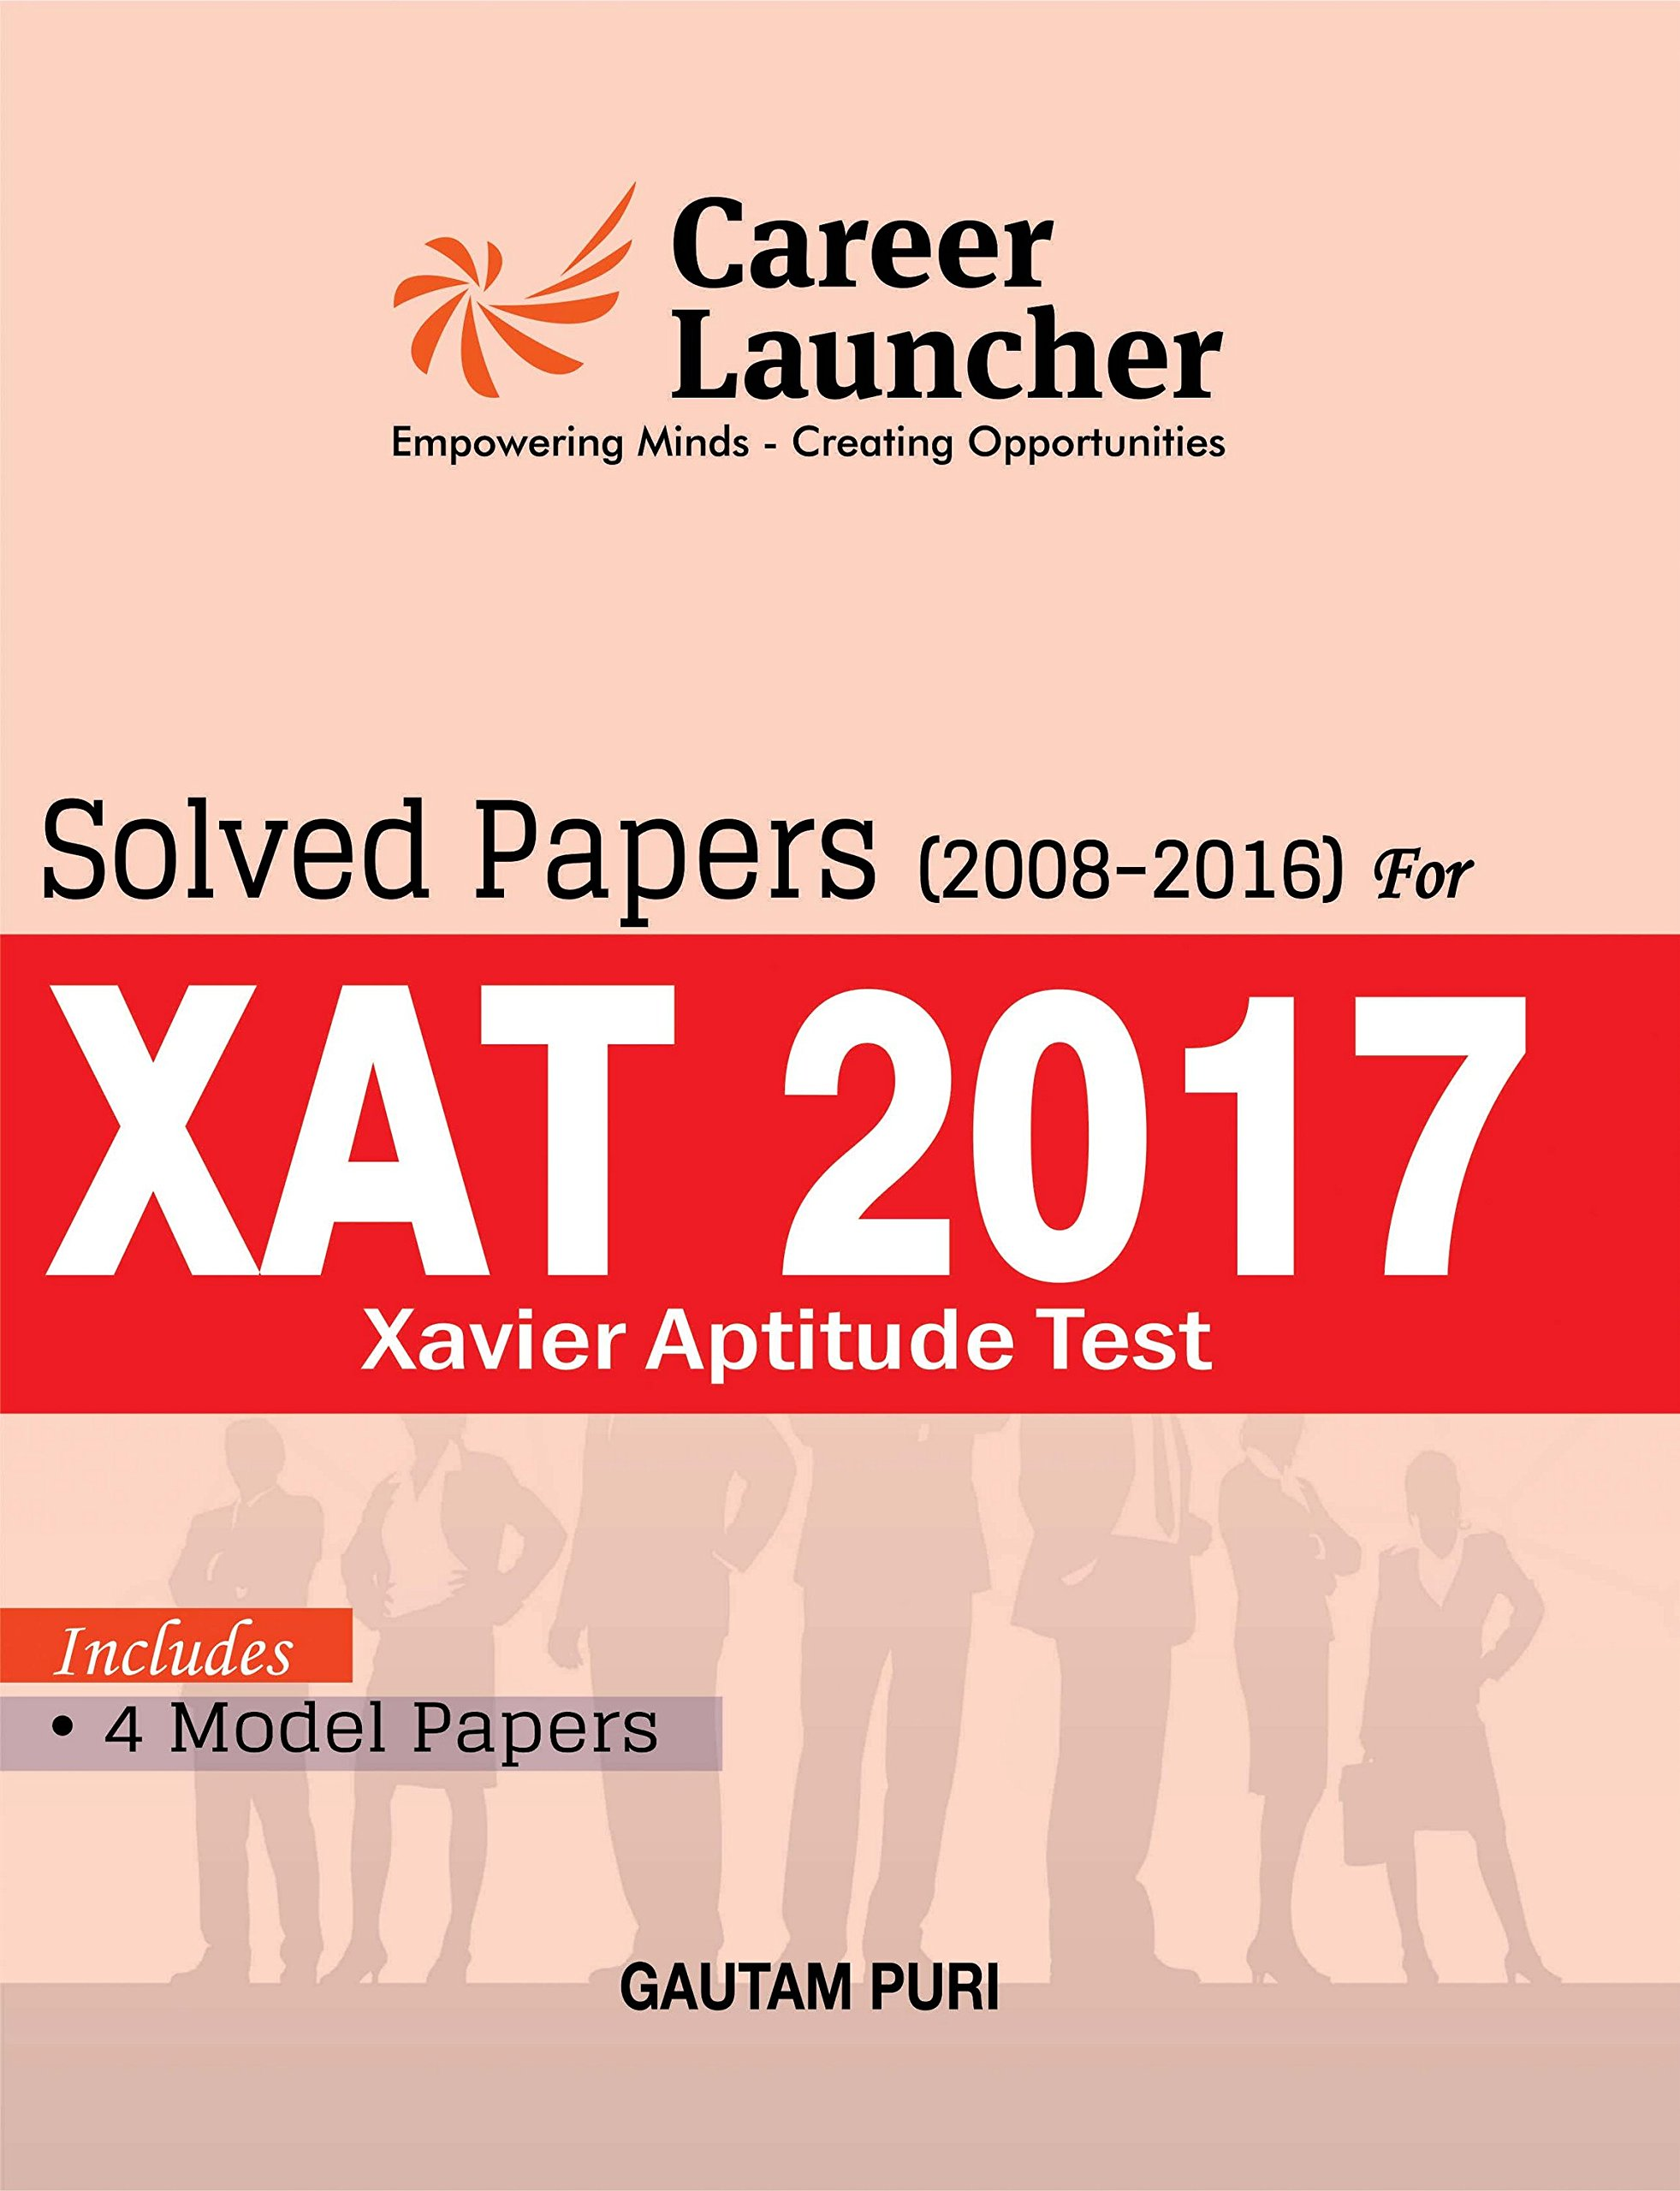 xat essay topics Hi folks, first of all the essay topics in xat don't have much significance unless two selected people have the same scores and rankur essay may also lead to questions being asked in the interview if ur essay reflects any interesting facet o.